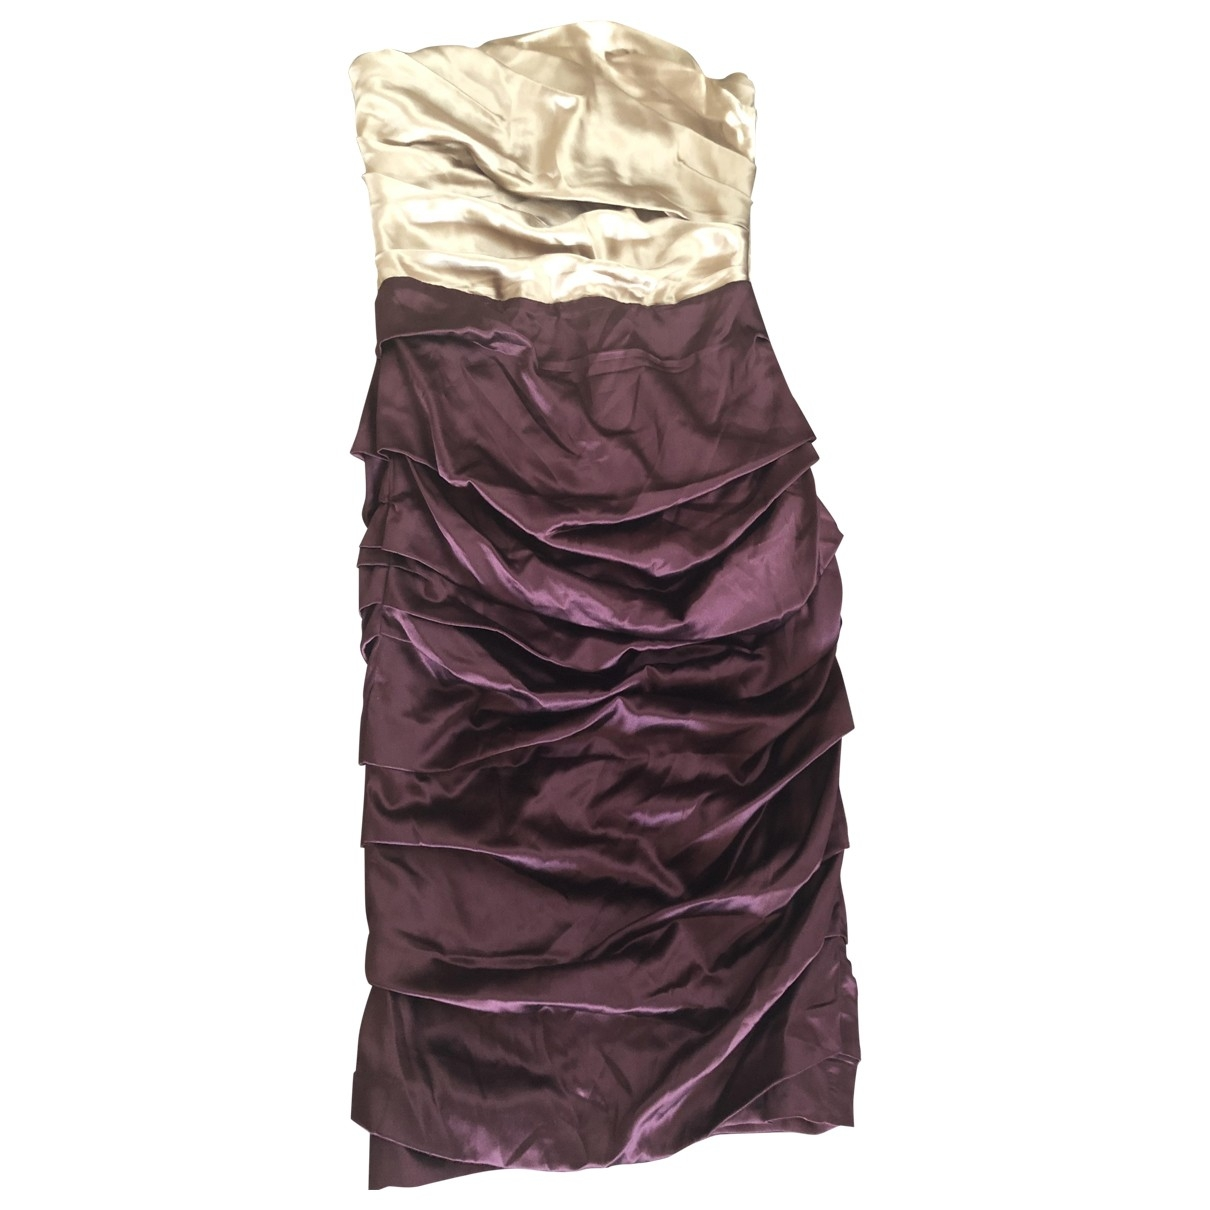 Dolce & Gabbana \N Burgundy Silk dress for Women 40 IT